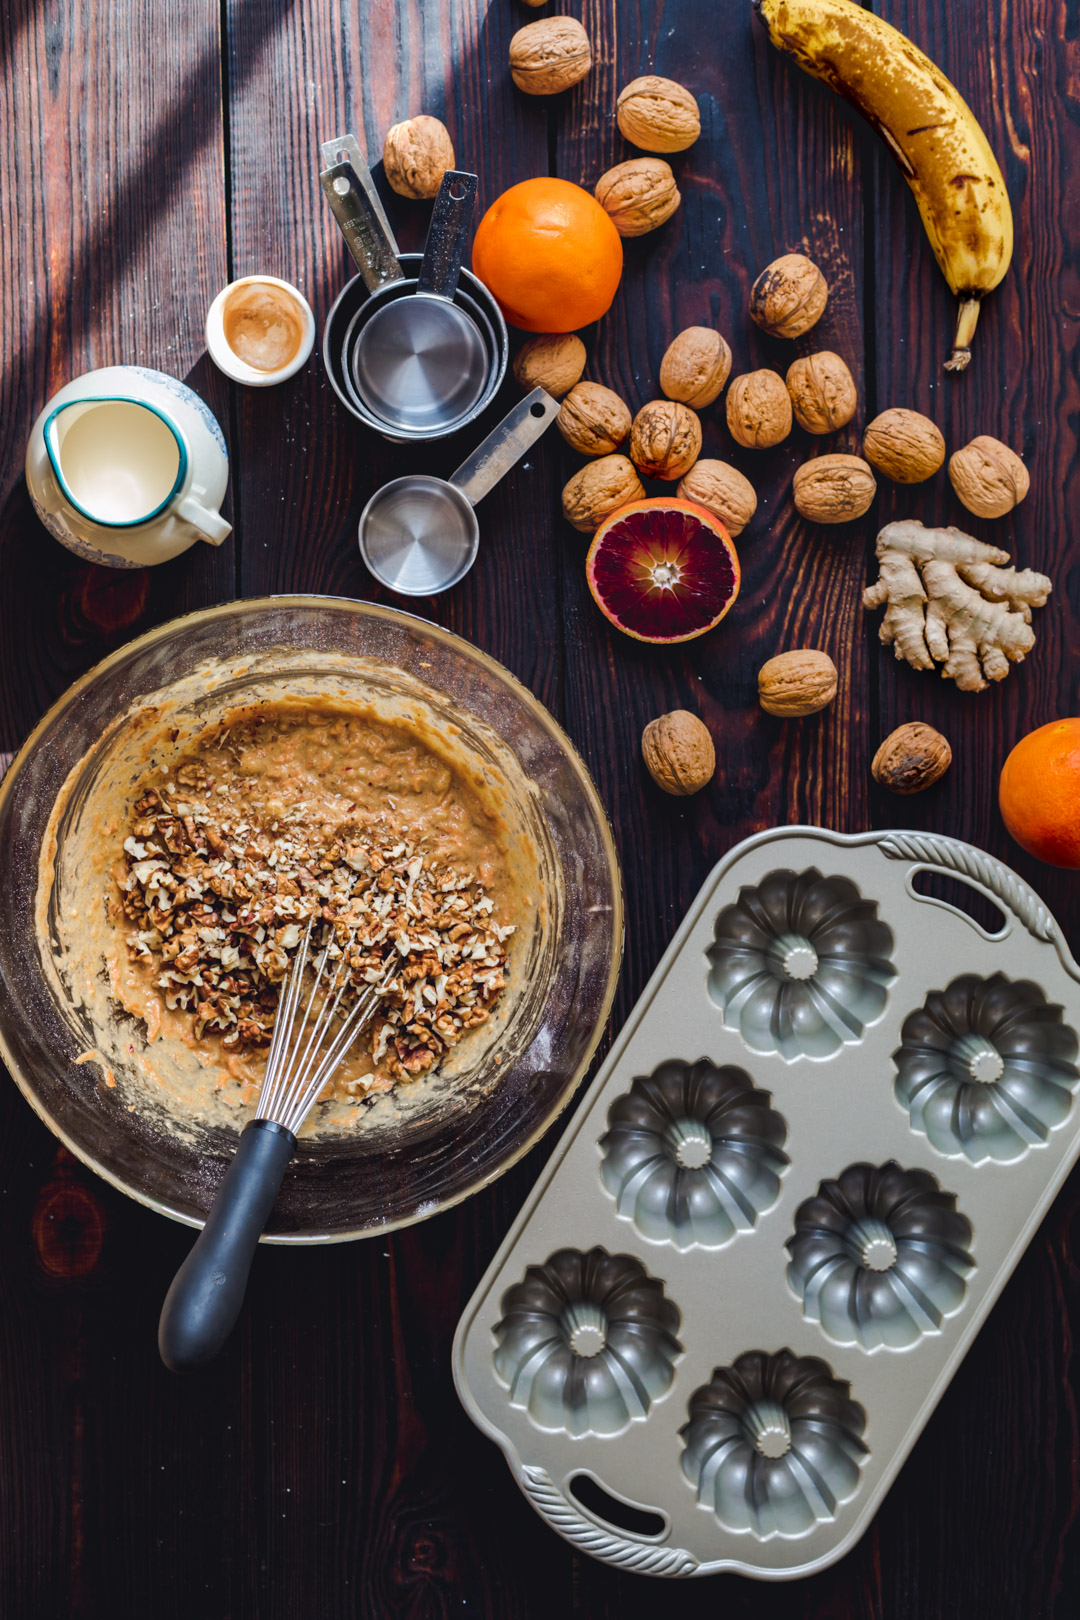 Carrot Bundt Cakes with walnuts